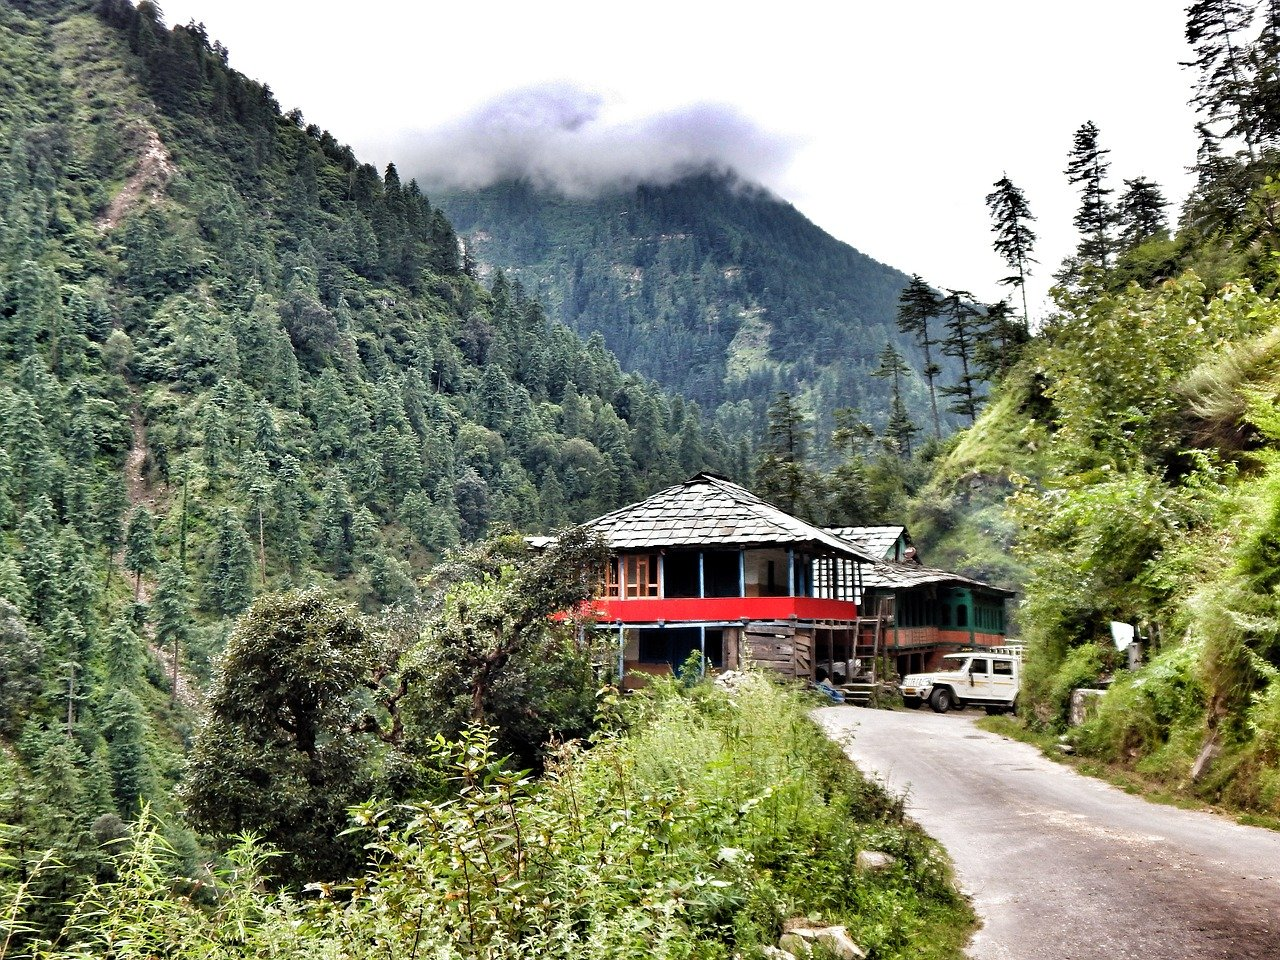 Jalori Pass - Top Rated Place to Visit in Tirthan Valley